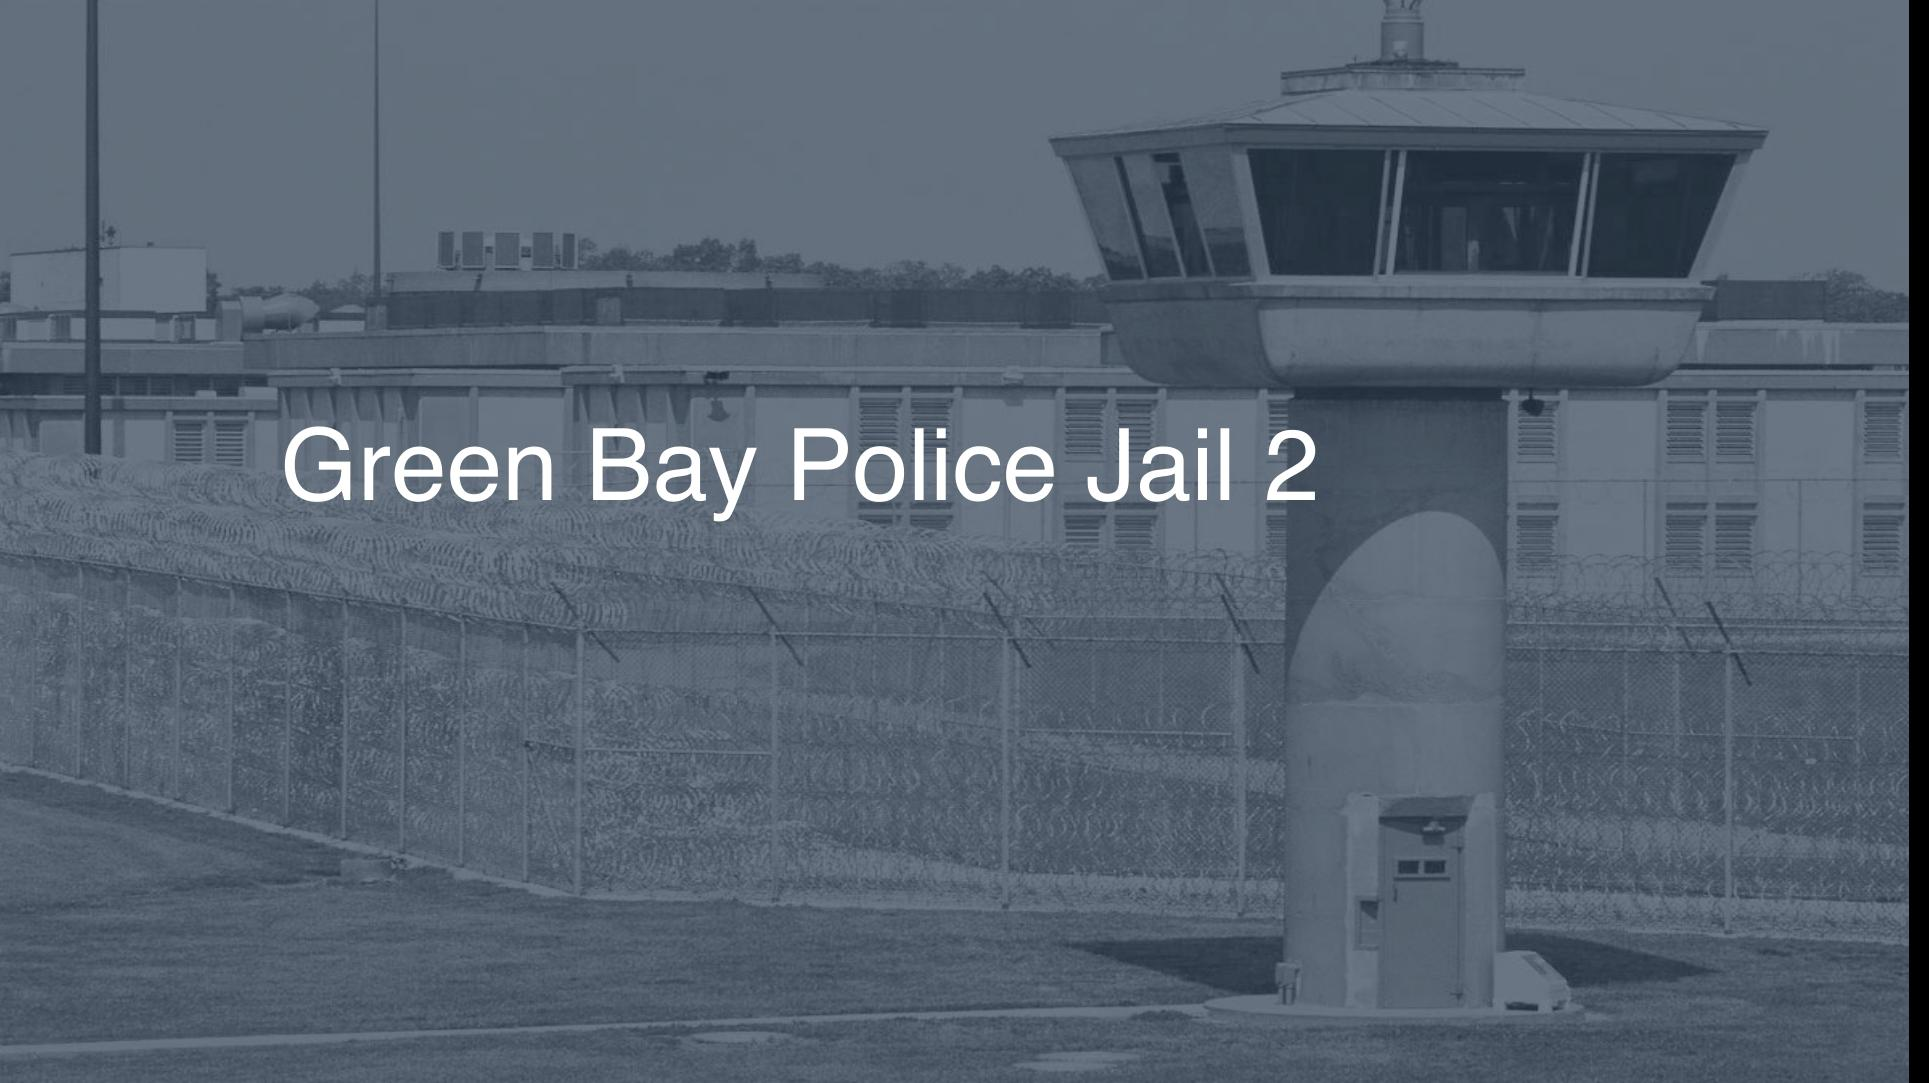 Green Bay Police Jail correctional facility picture